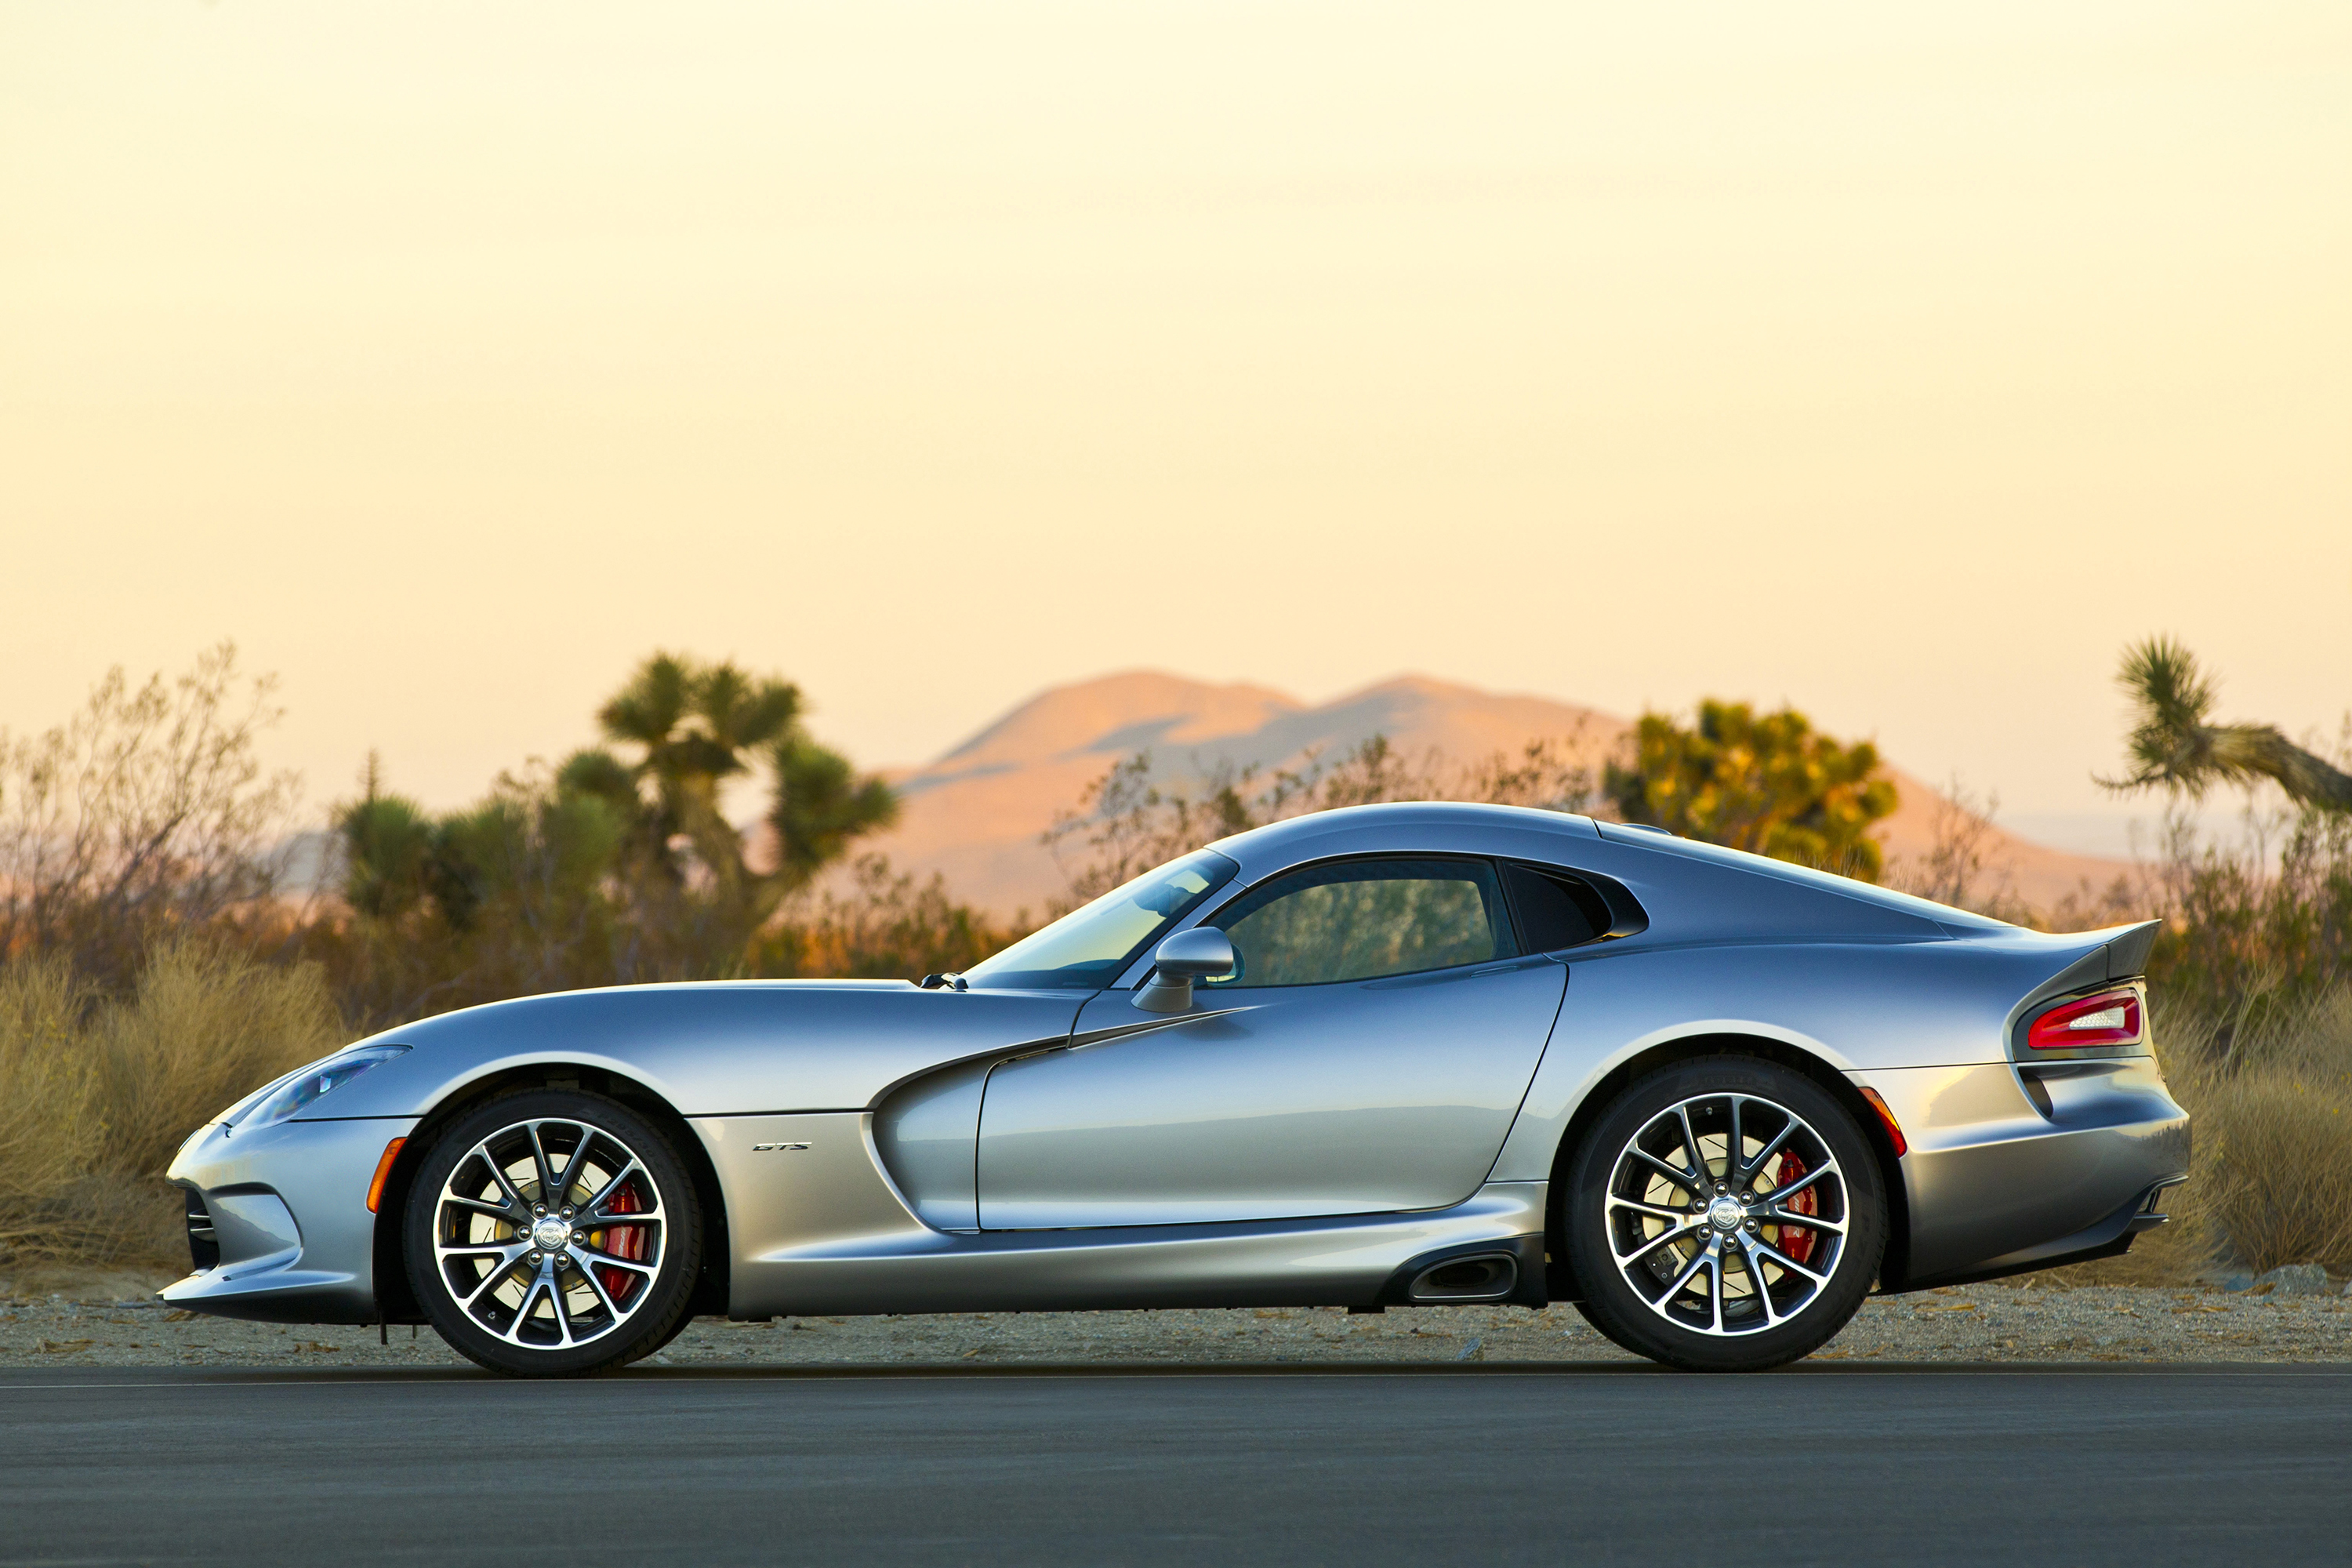 Daily Wallpaper: 2015 Dodge Viper GTS | I Like To Waste My Time